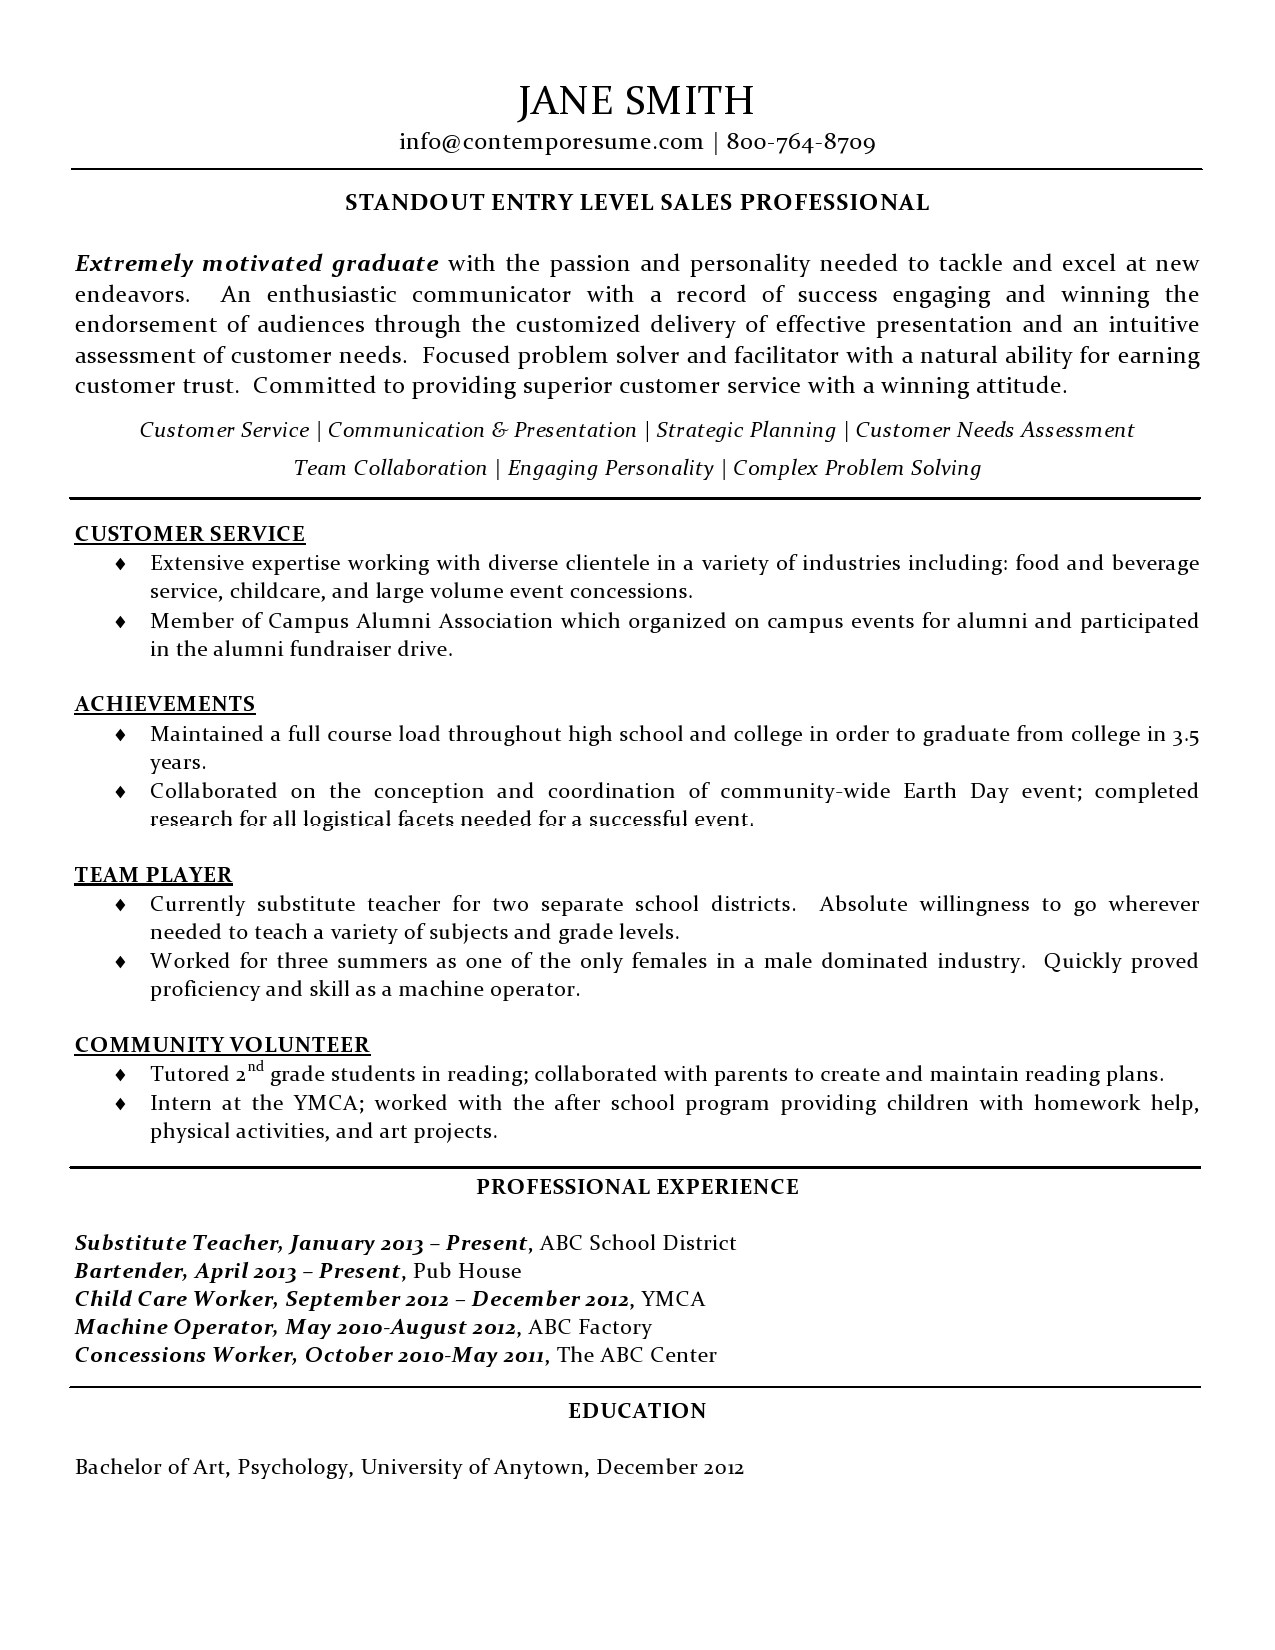 Event Volunteer Cover Letter Sales Professional Resume Entry Level